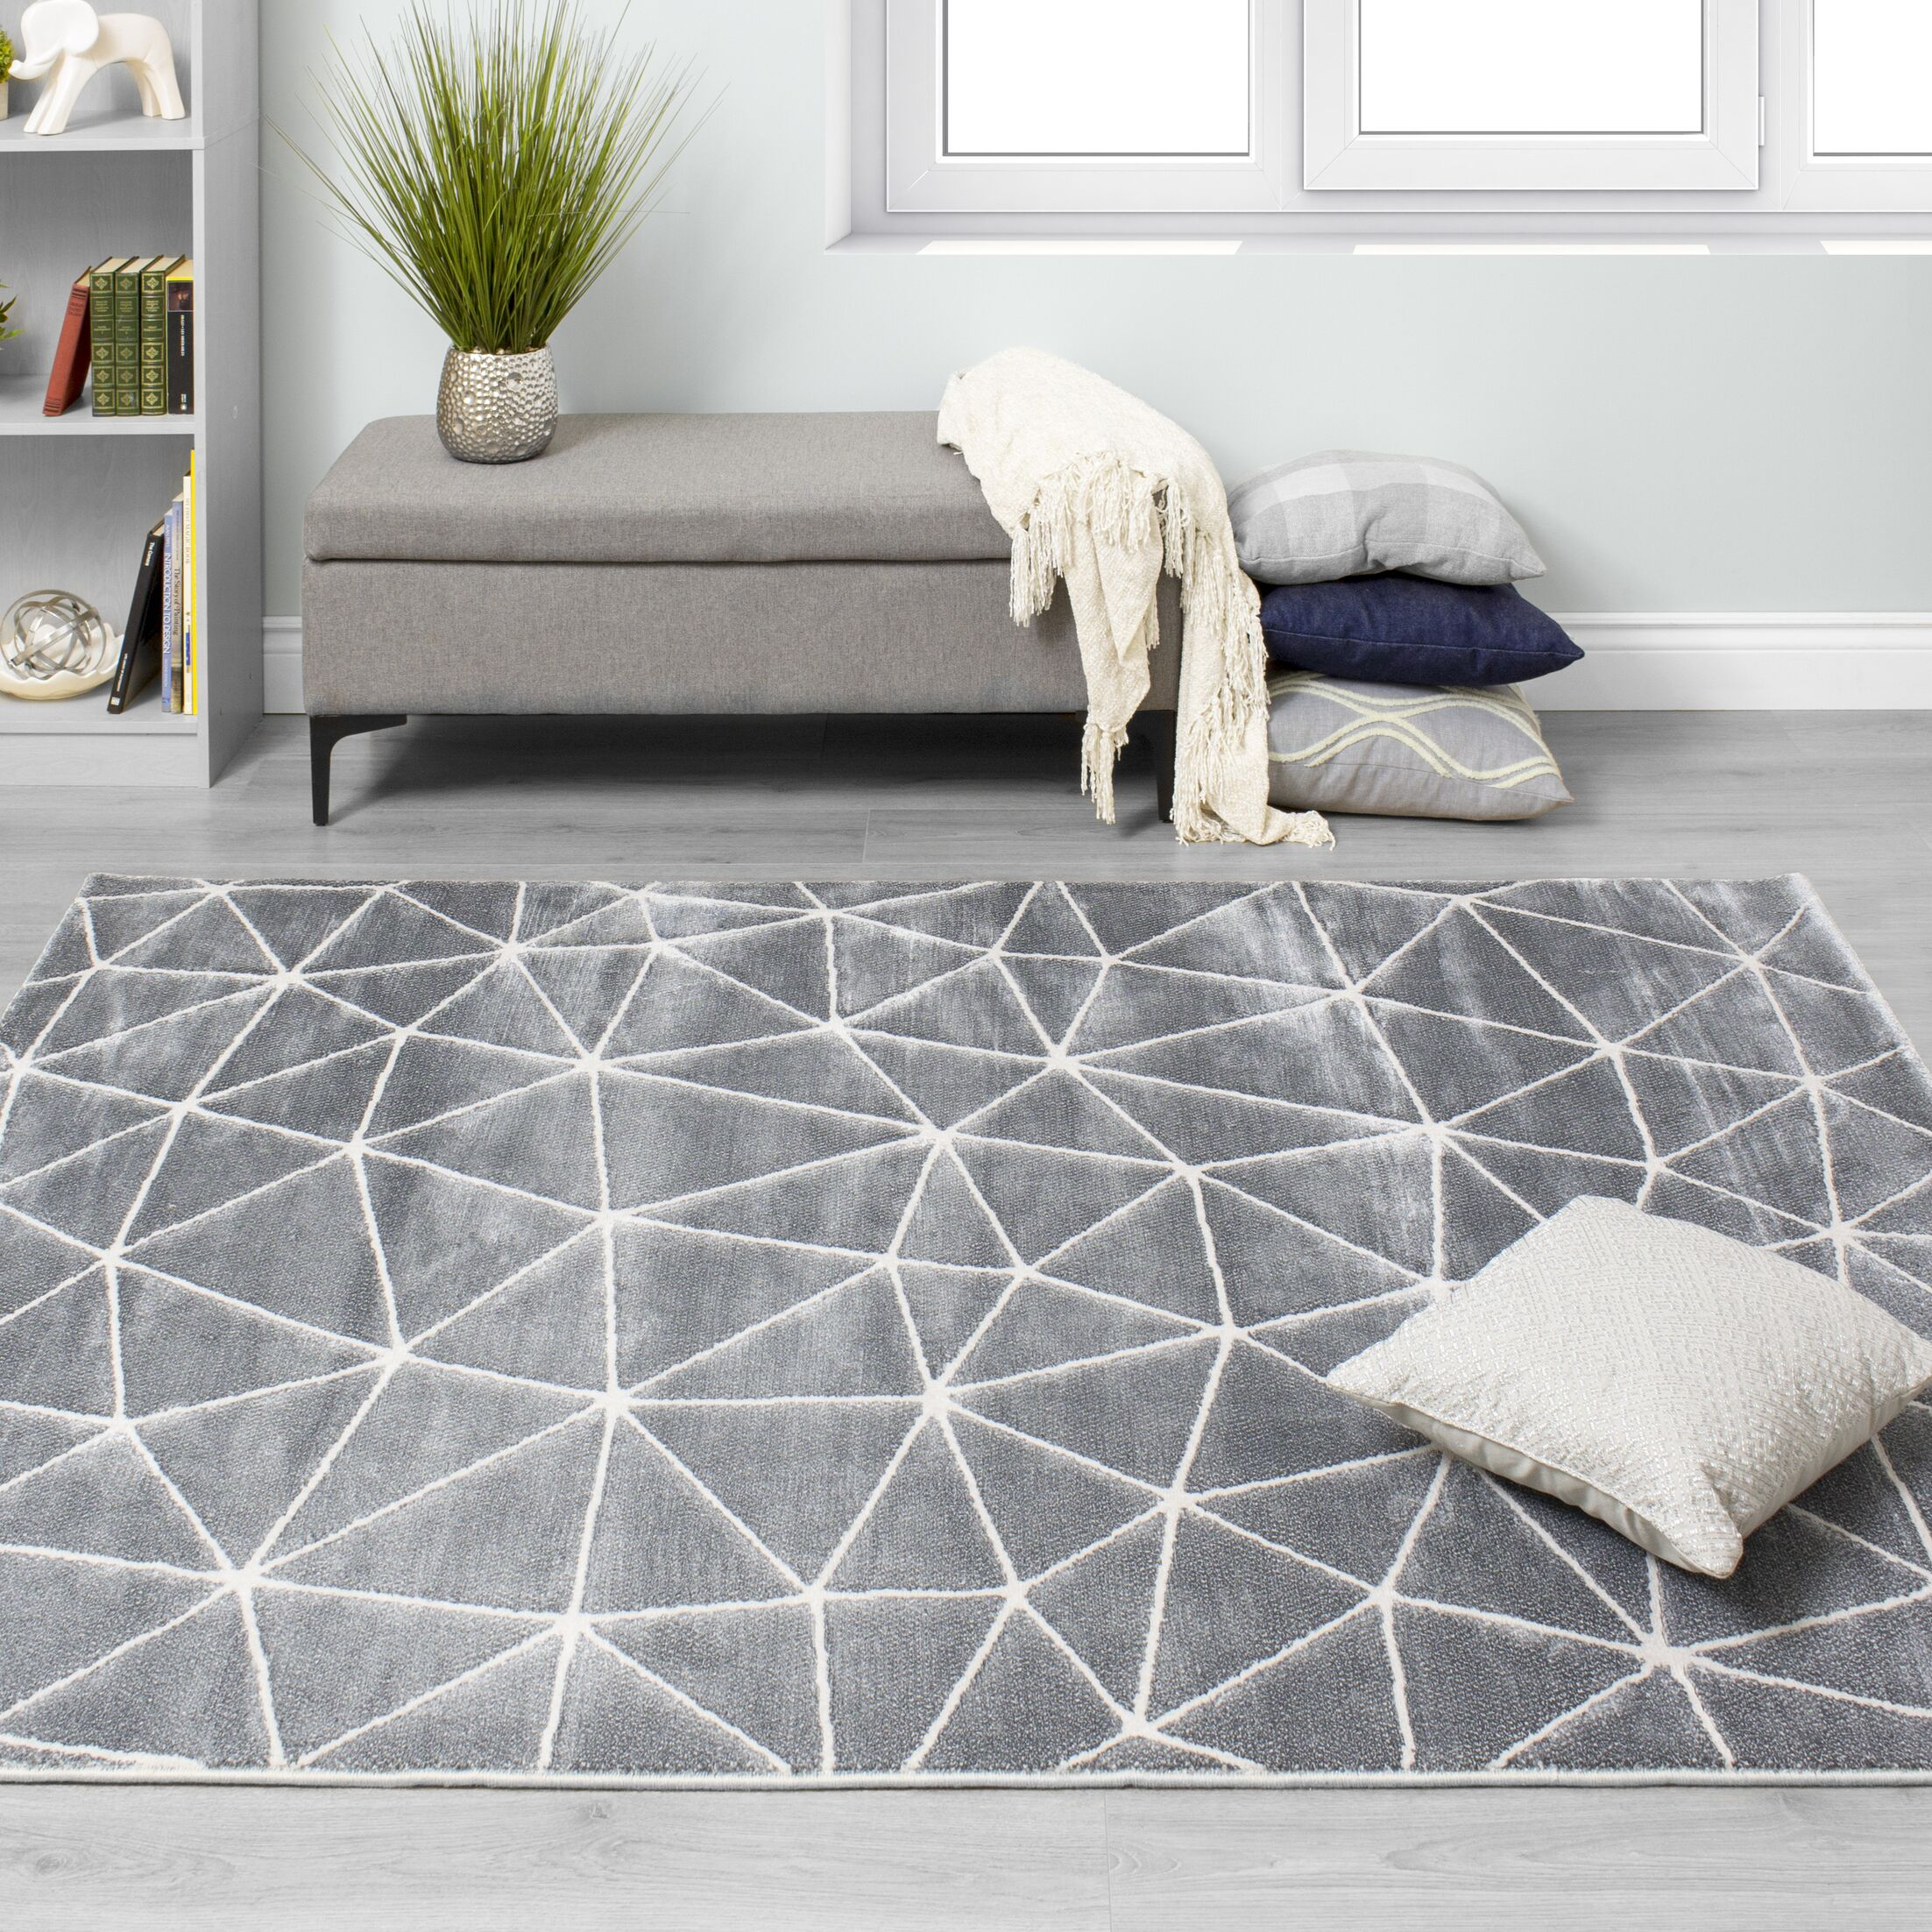 Finnick Starlight Dome Gray Area Rug Rug Size: Rectangle 5'3'' x 7'7''